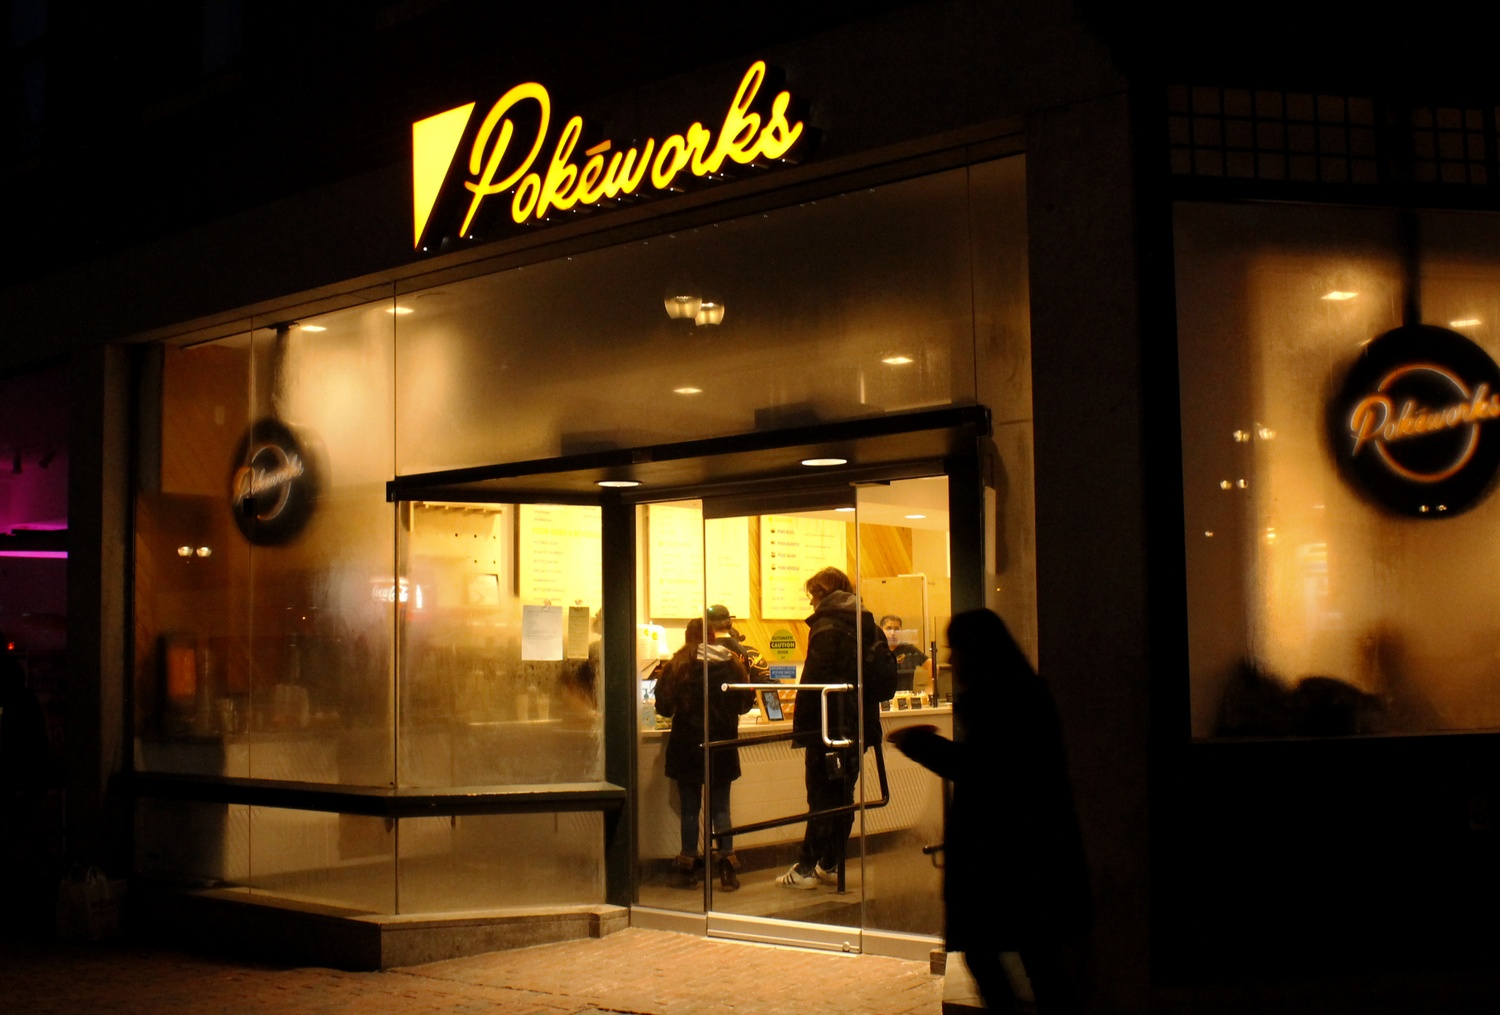 Pokeworks, a restaurant chain selling classic Hawaiian poke dishes, opens in Harvard Square in a space previously occupied by Liquiteria.